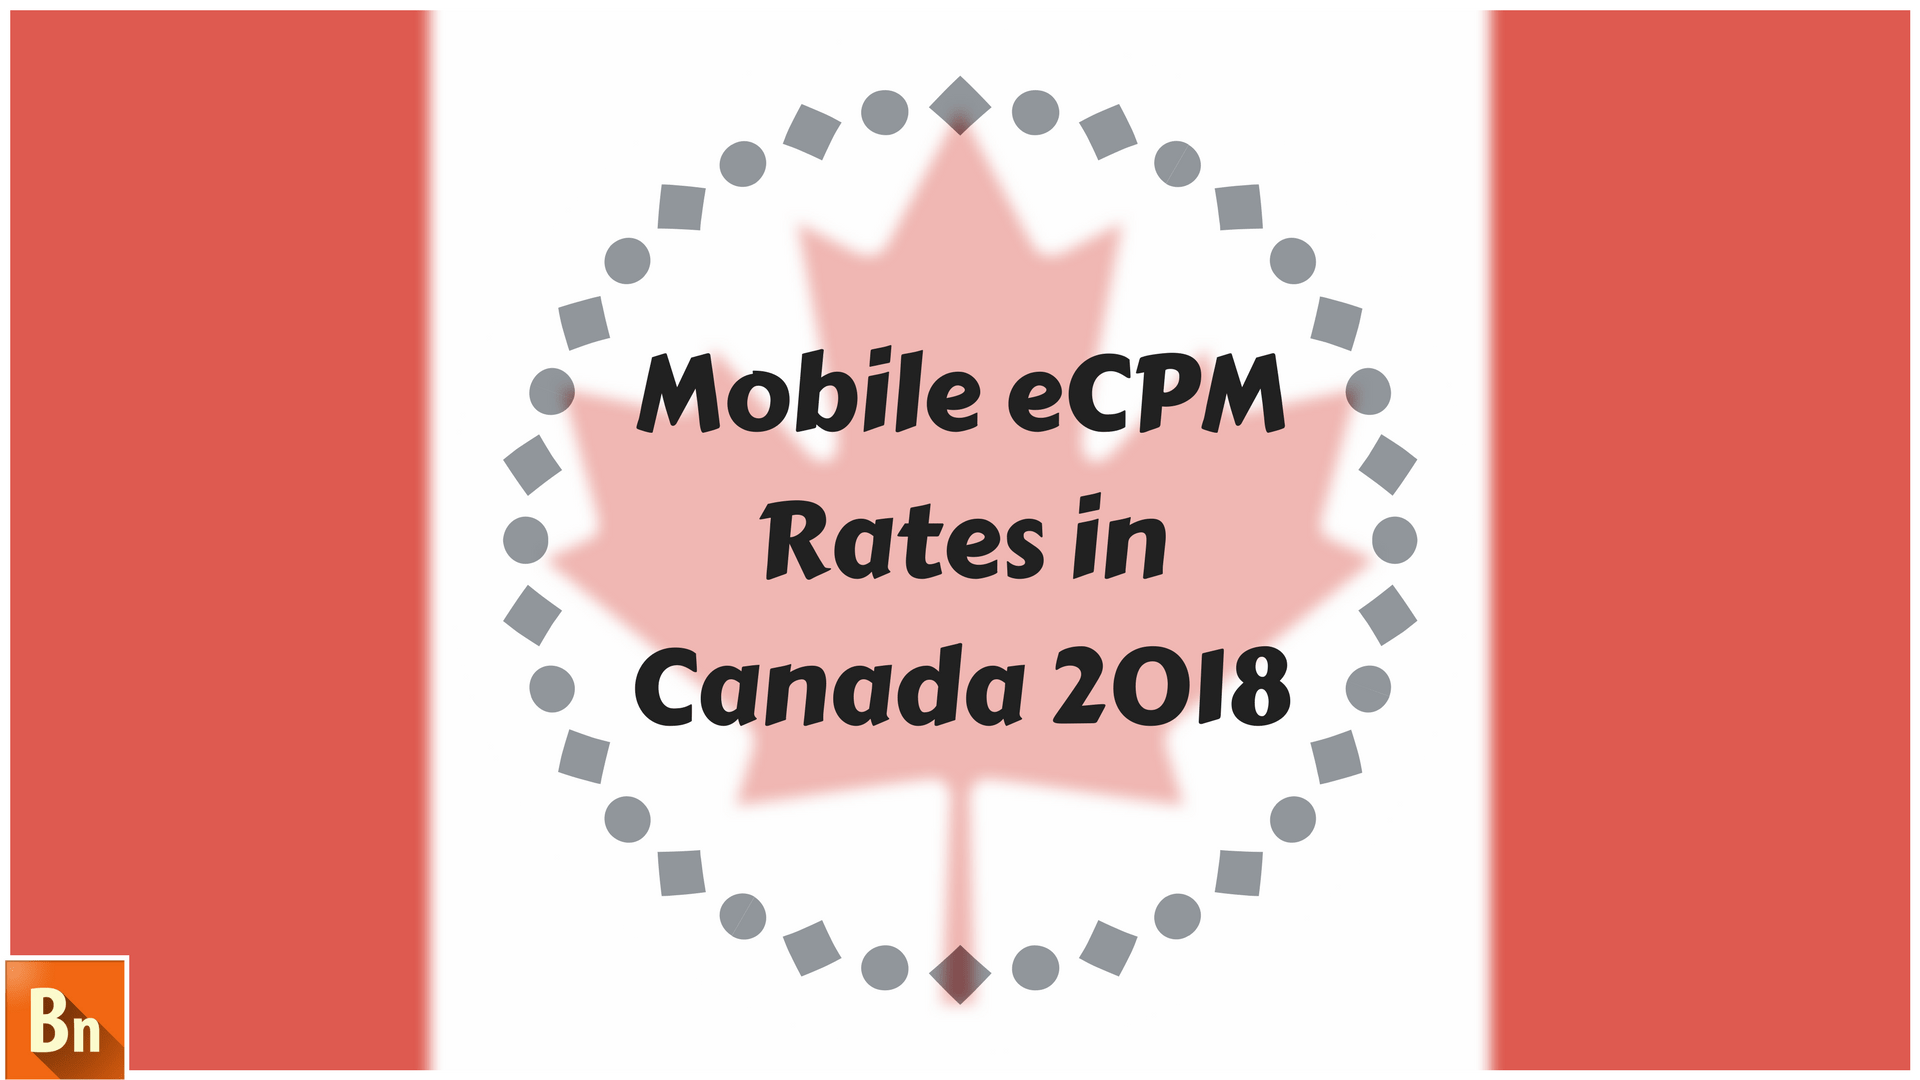 Mobile eCPM Rates in Canada 2018